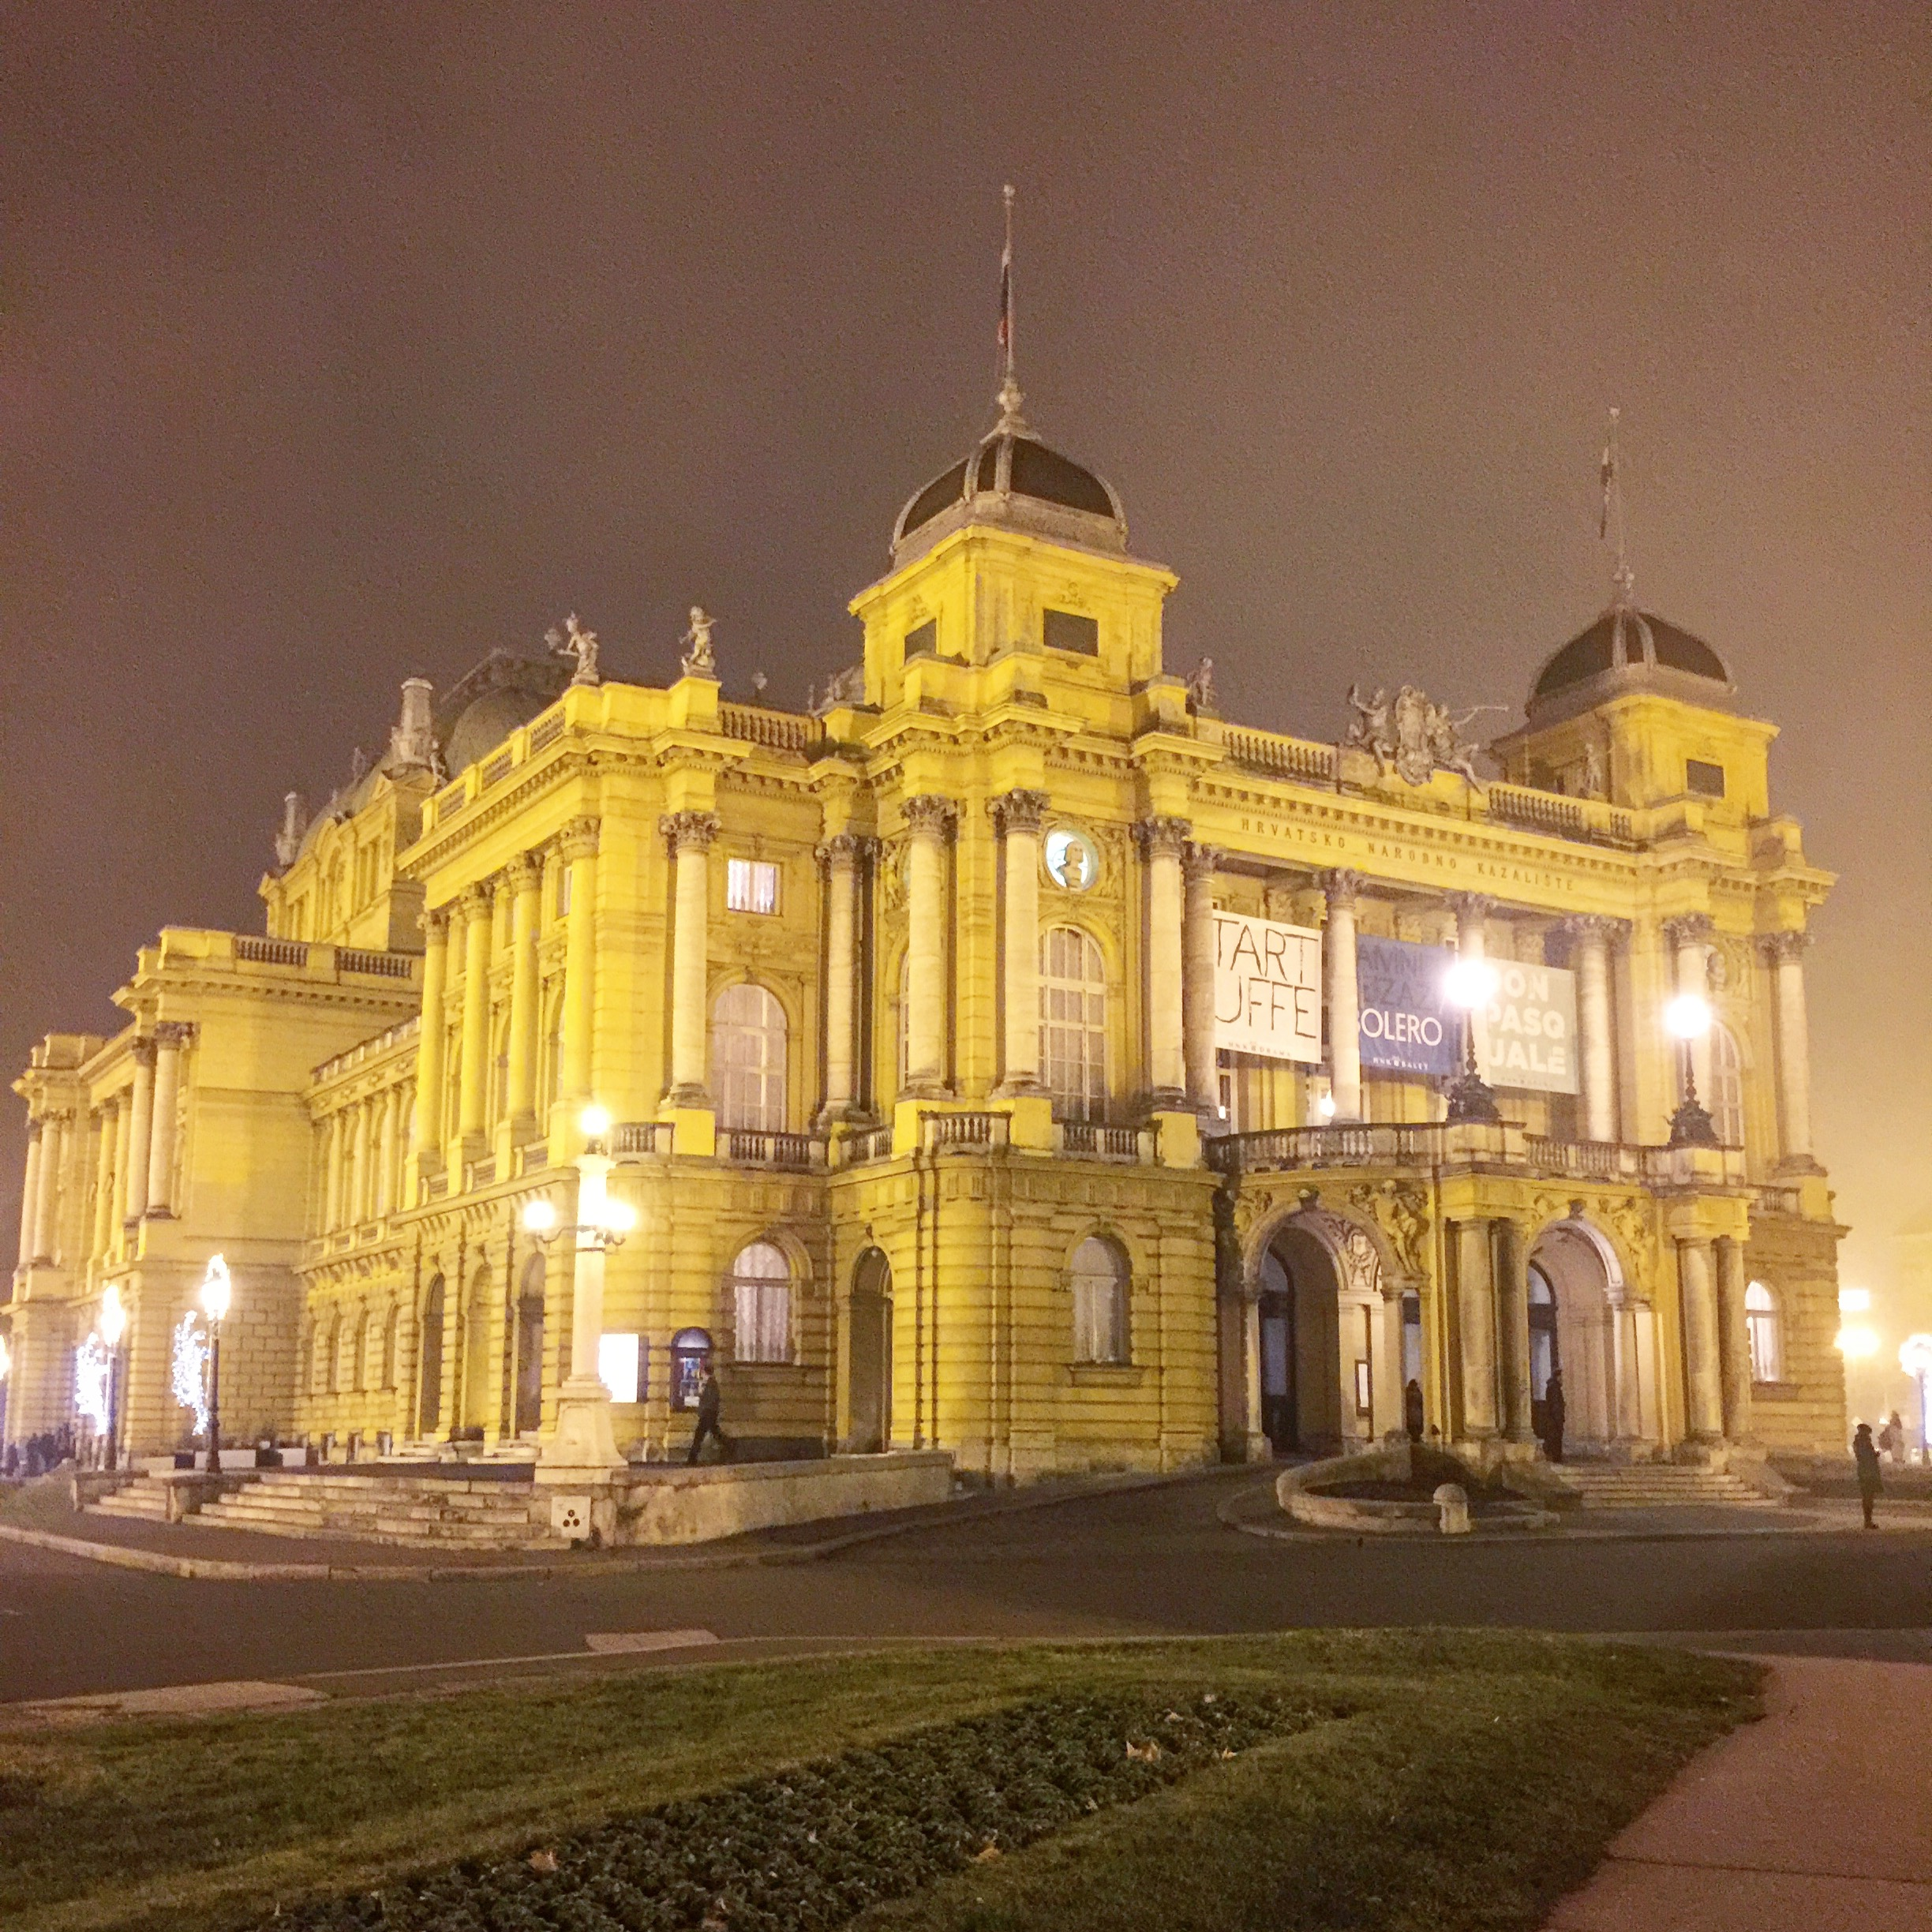 HNK - Croatian National Theater